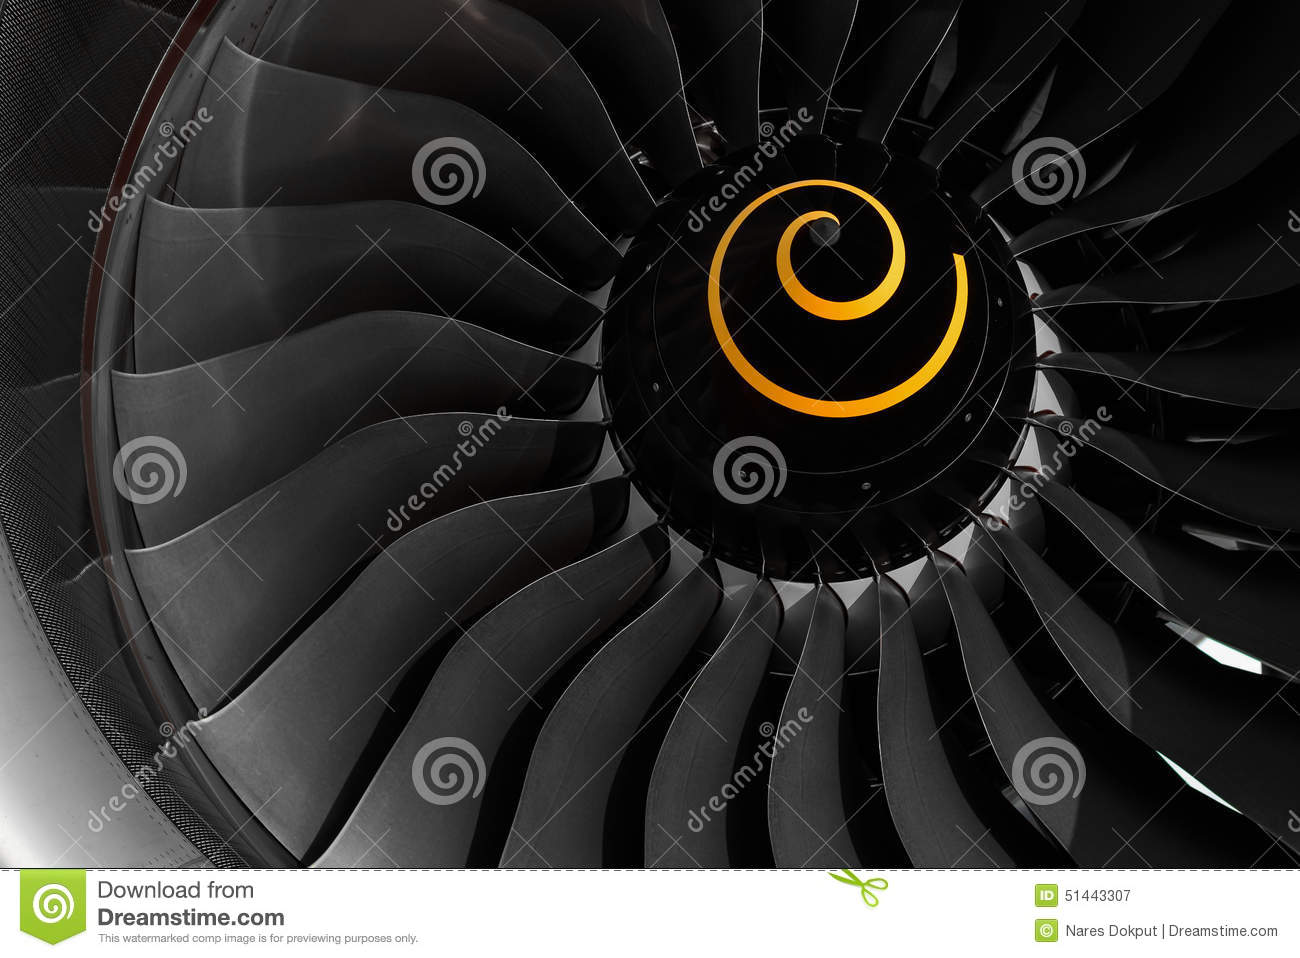 Jet Engine Fan Blades : Fan blade of aircraft jet engine stock photo image